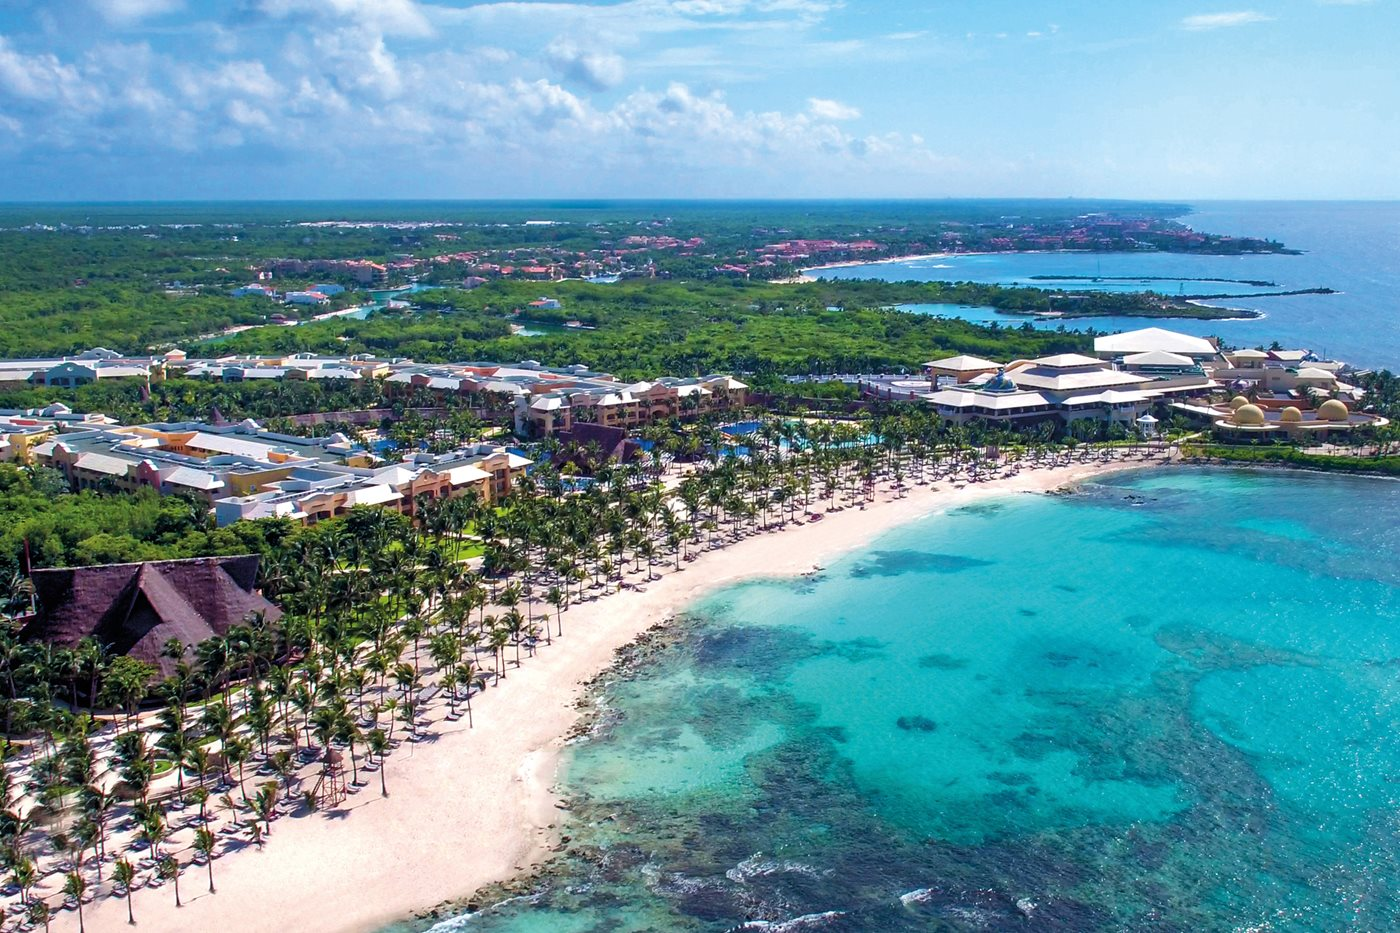 Barceló Maya Palace reviews, opinions and consumer feedback